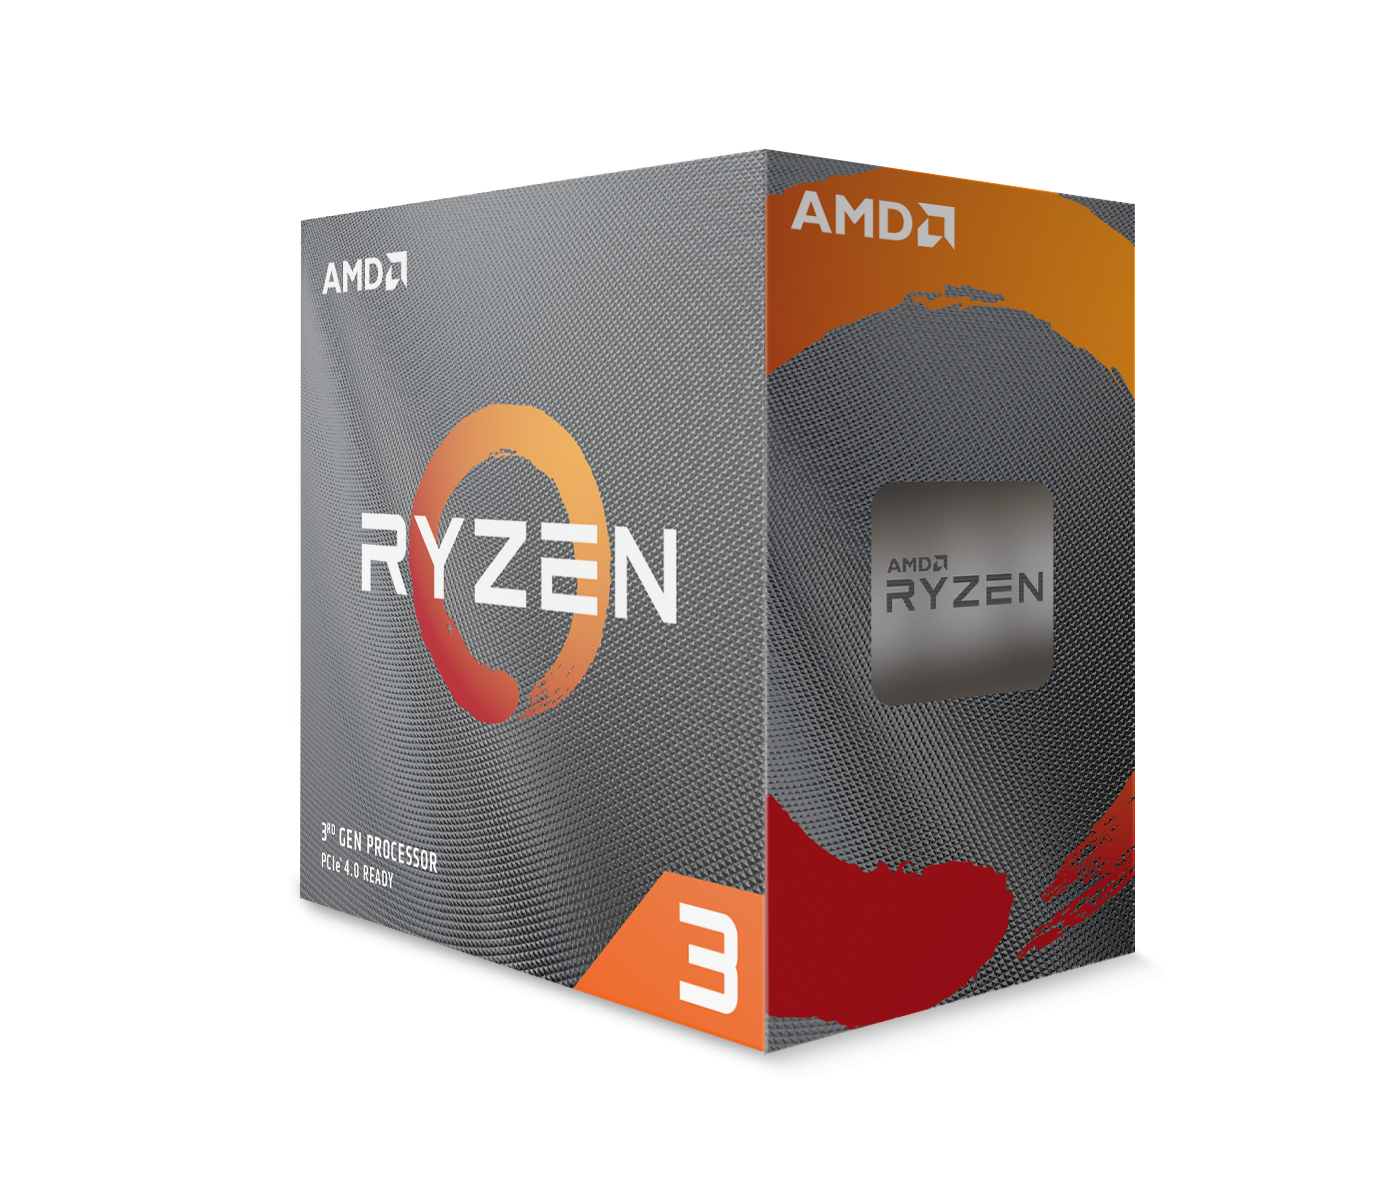 Процесор AMD RYZEN 3 3100 4-Core 3.6 GHz (3.9 GHz Turbo) 18MB/65W/AM4/BOX